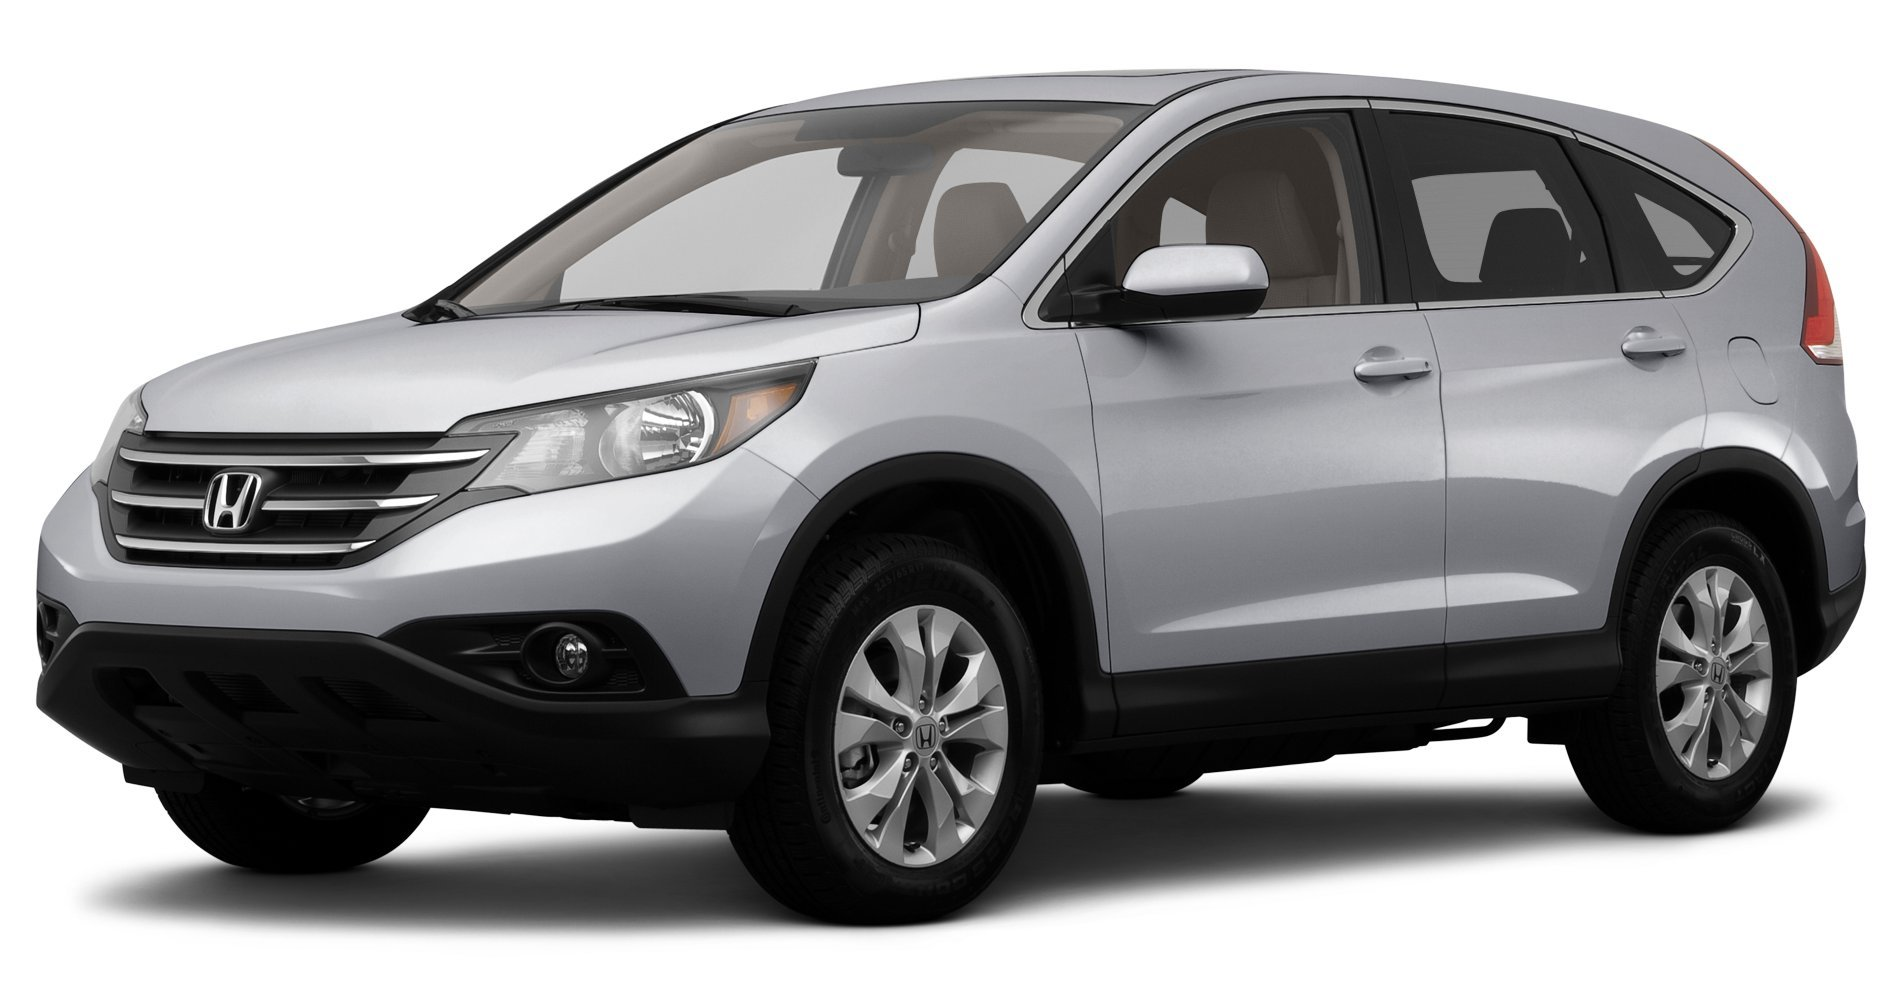 2014 honda cr v reviews images and specs vehicles. Black Bedroom Furniture Sets. Home Design Ideas